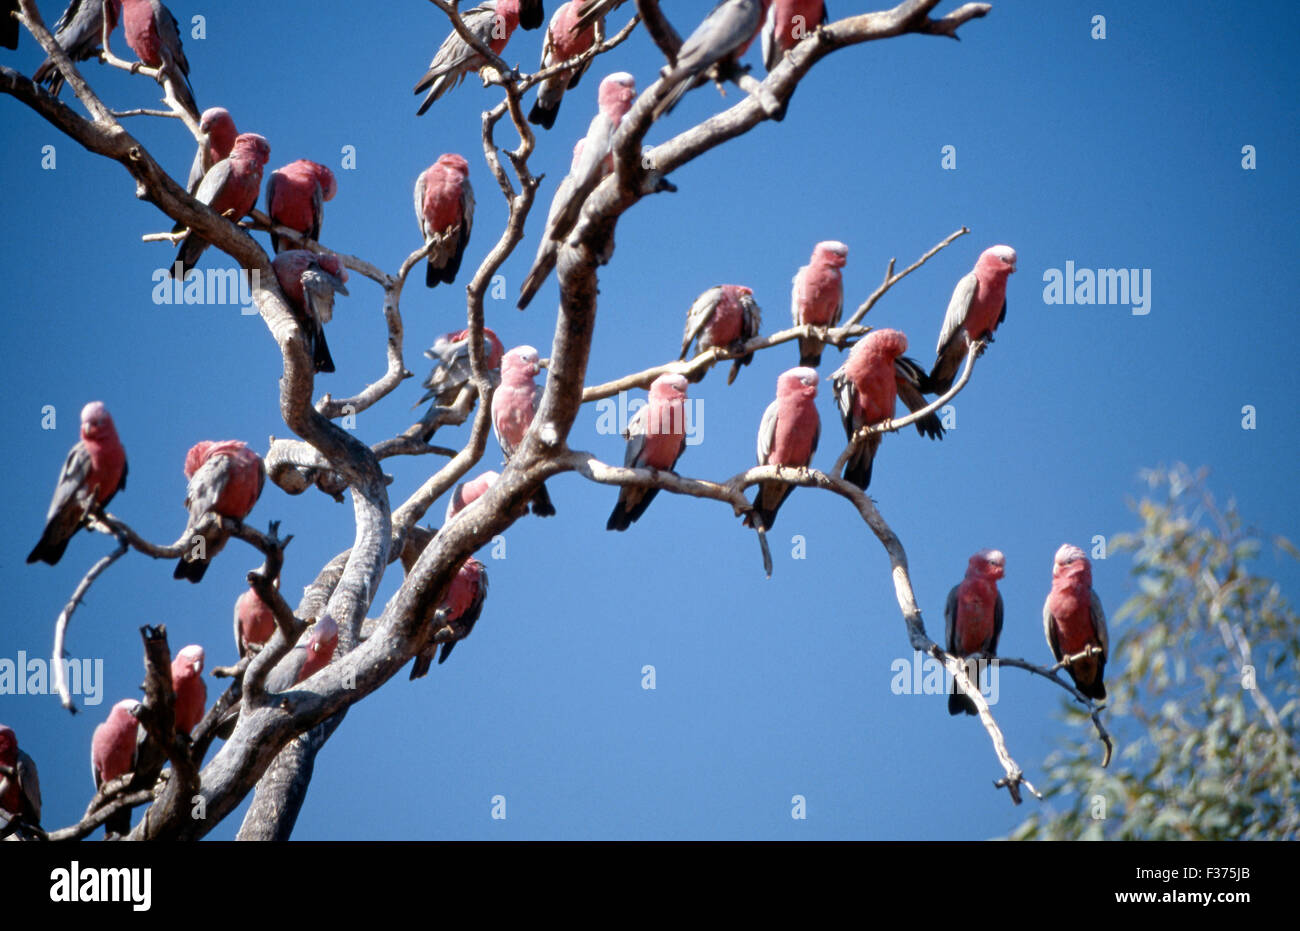 FLOCK OF GALAHS (CACATUA ROSEICAPILLA) ROOSTING IN A TALL TREE, A FAMILIAR SIGHT IN INLAND AUSTRALIA. - Stock Image